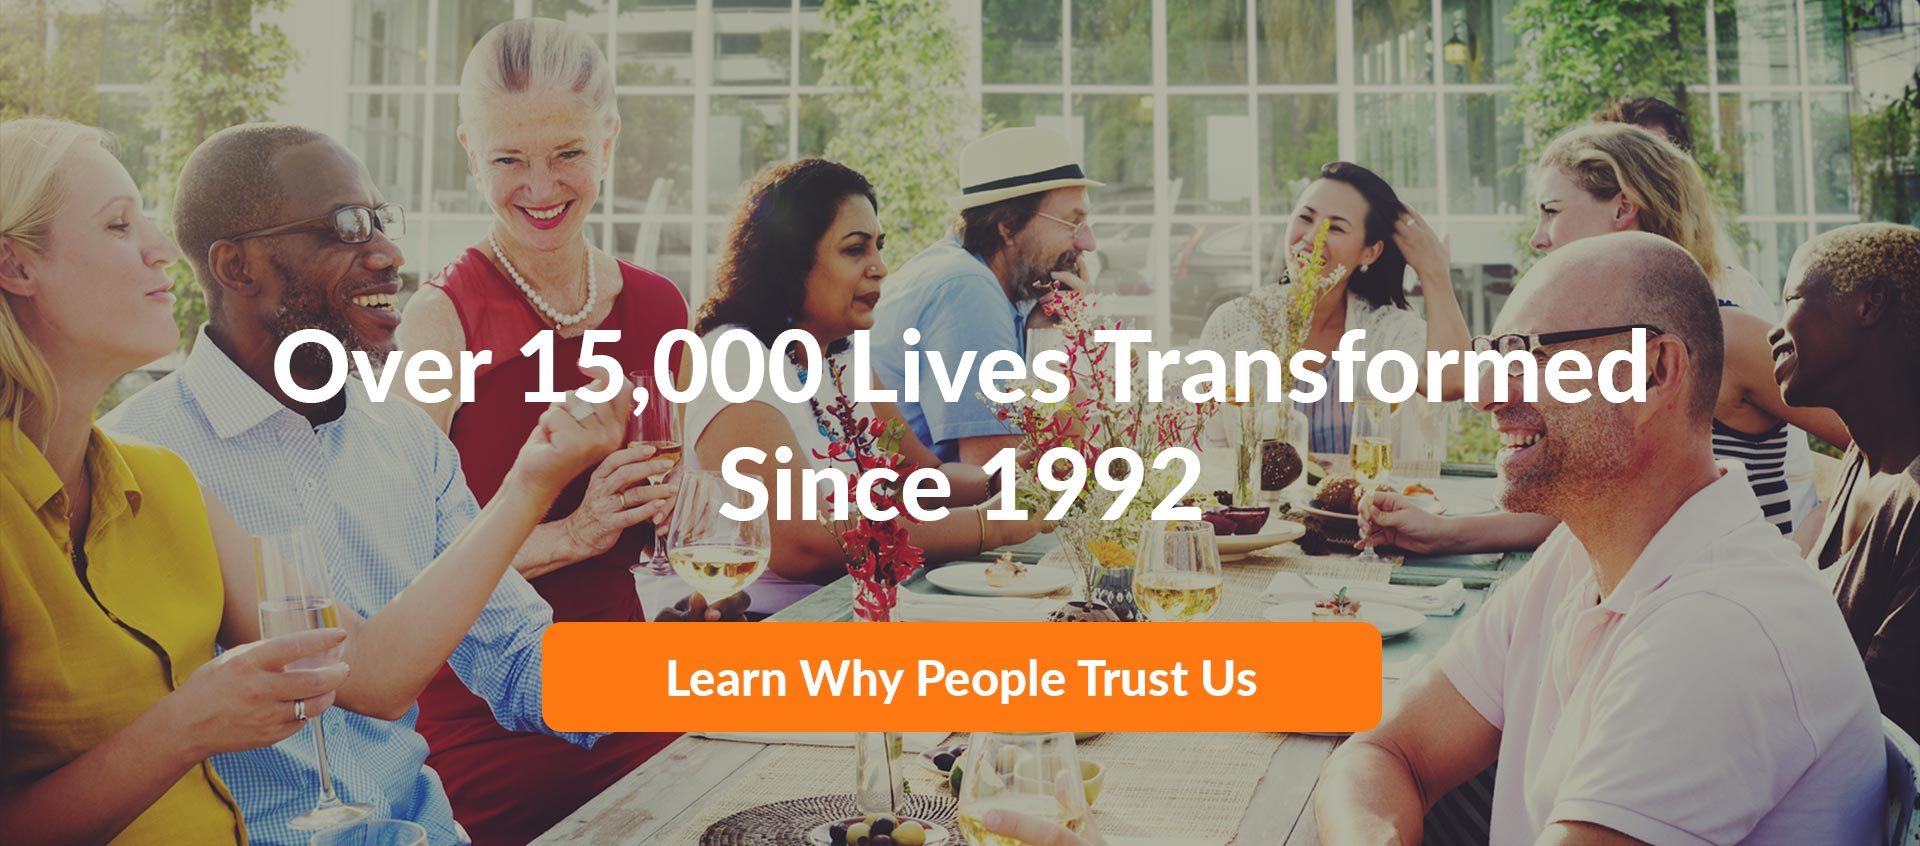 over 10000 lives transformed since 1992